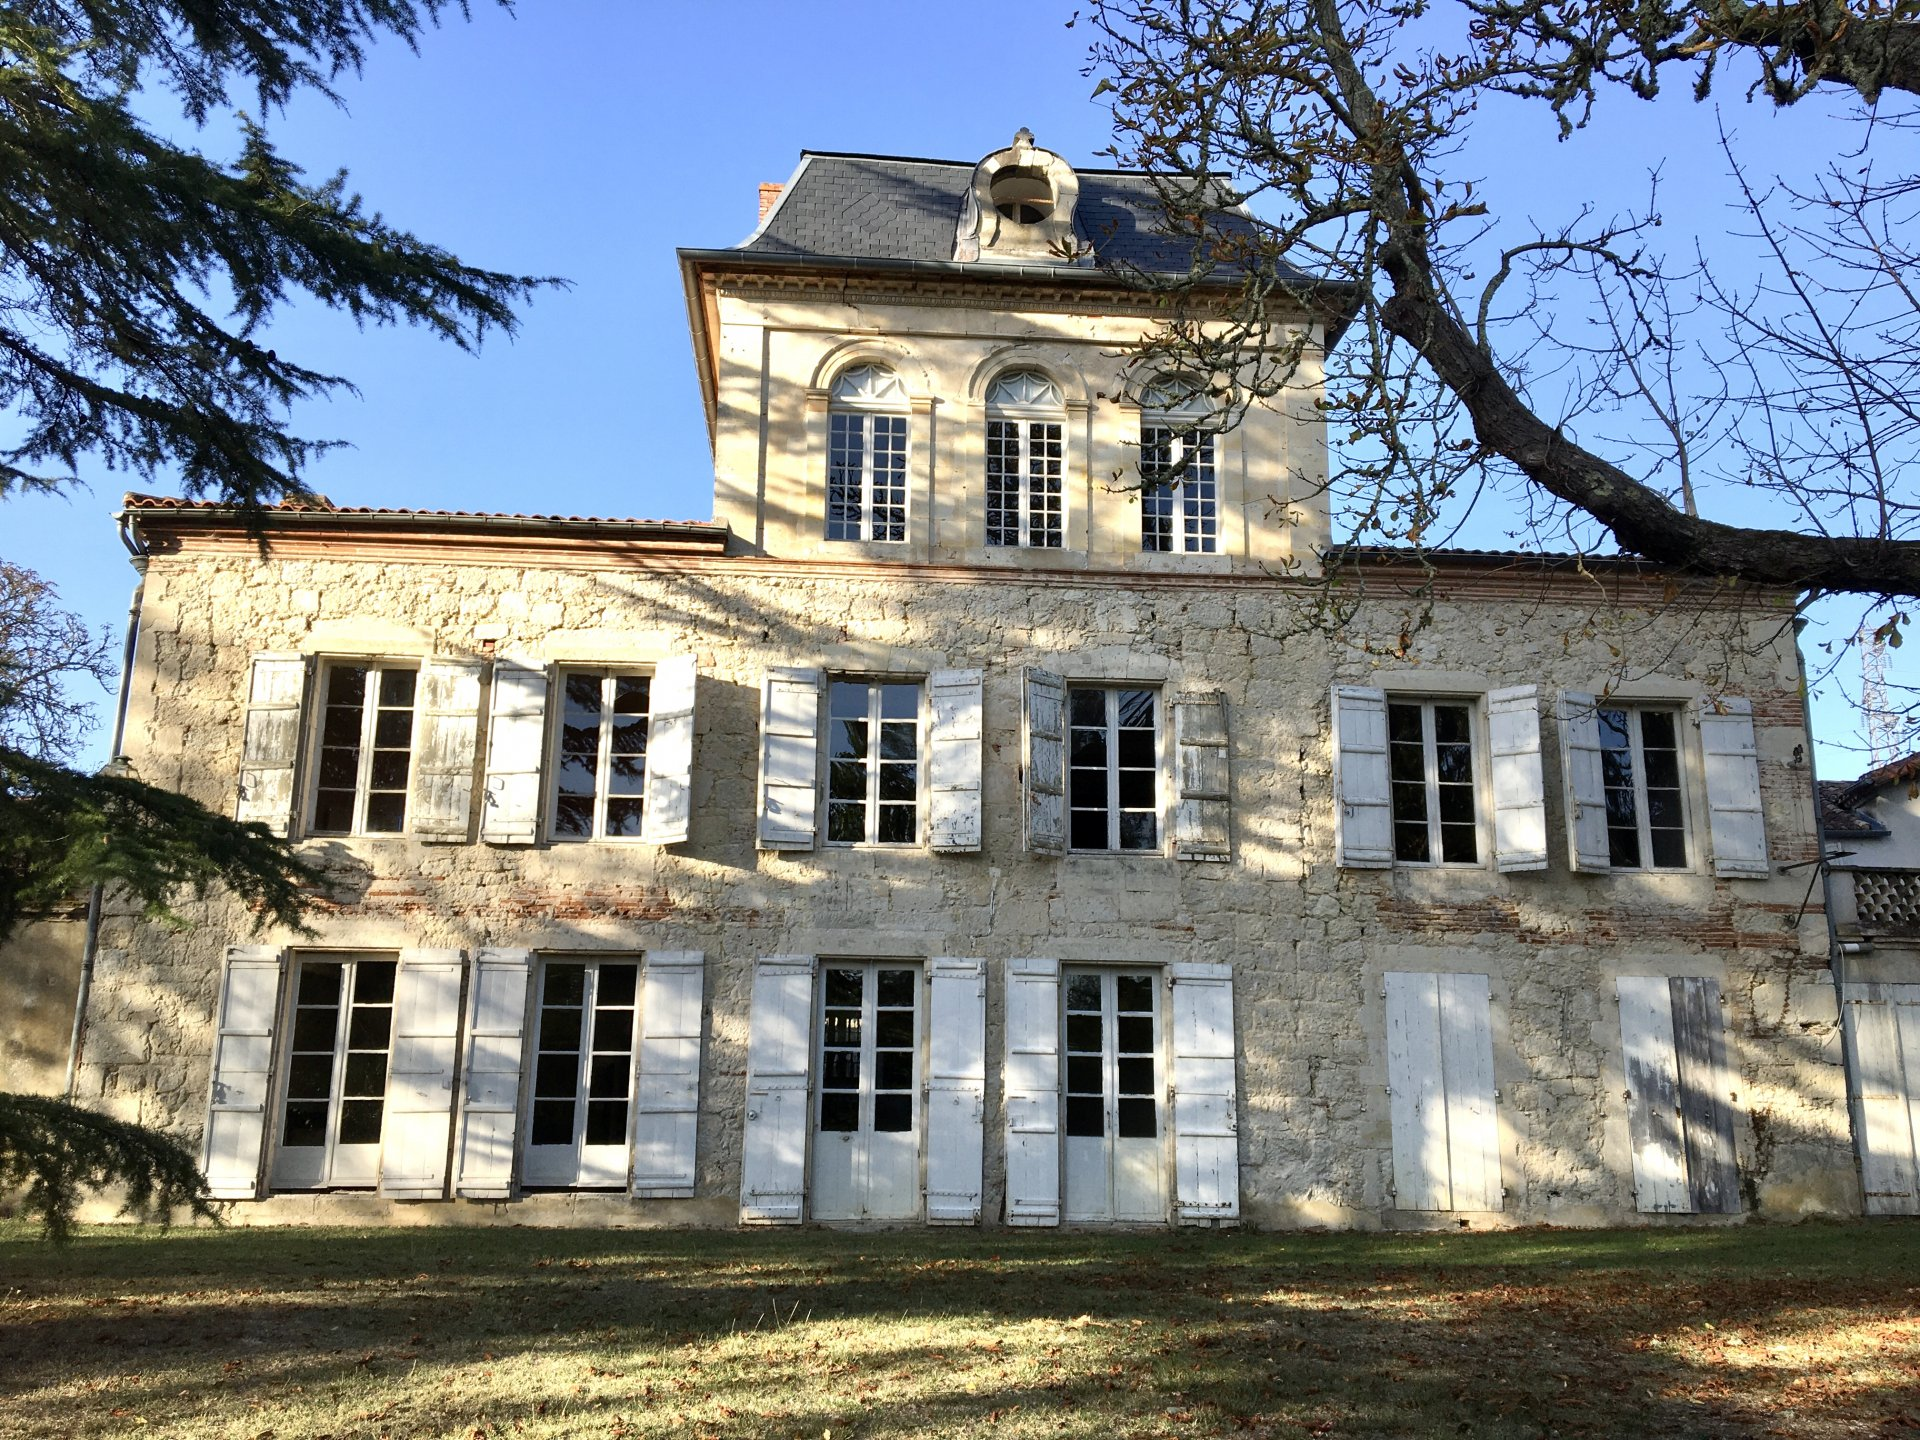 Beautiful Château waiting for some love and restoration